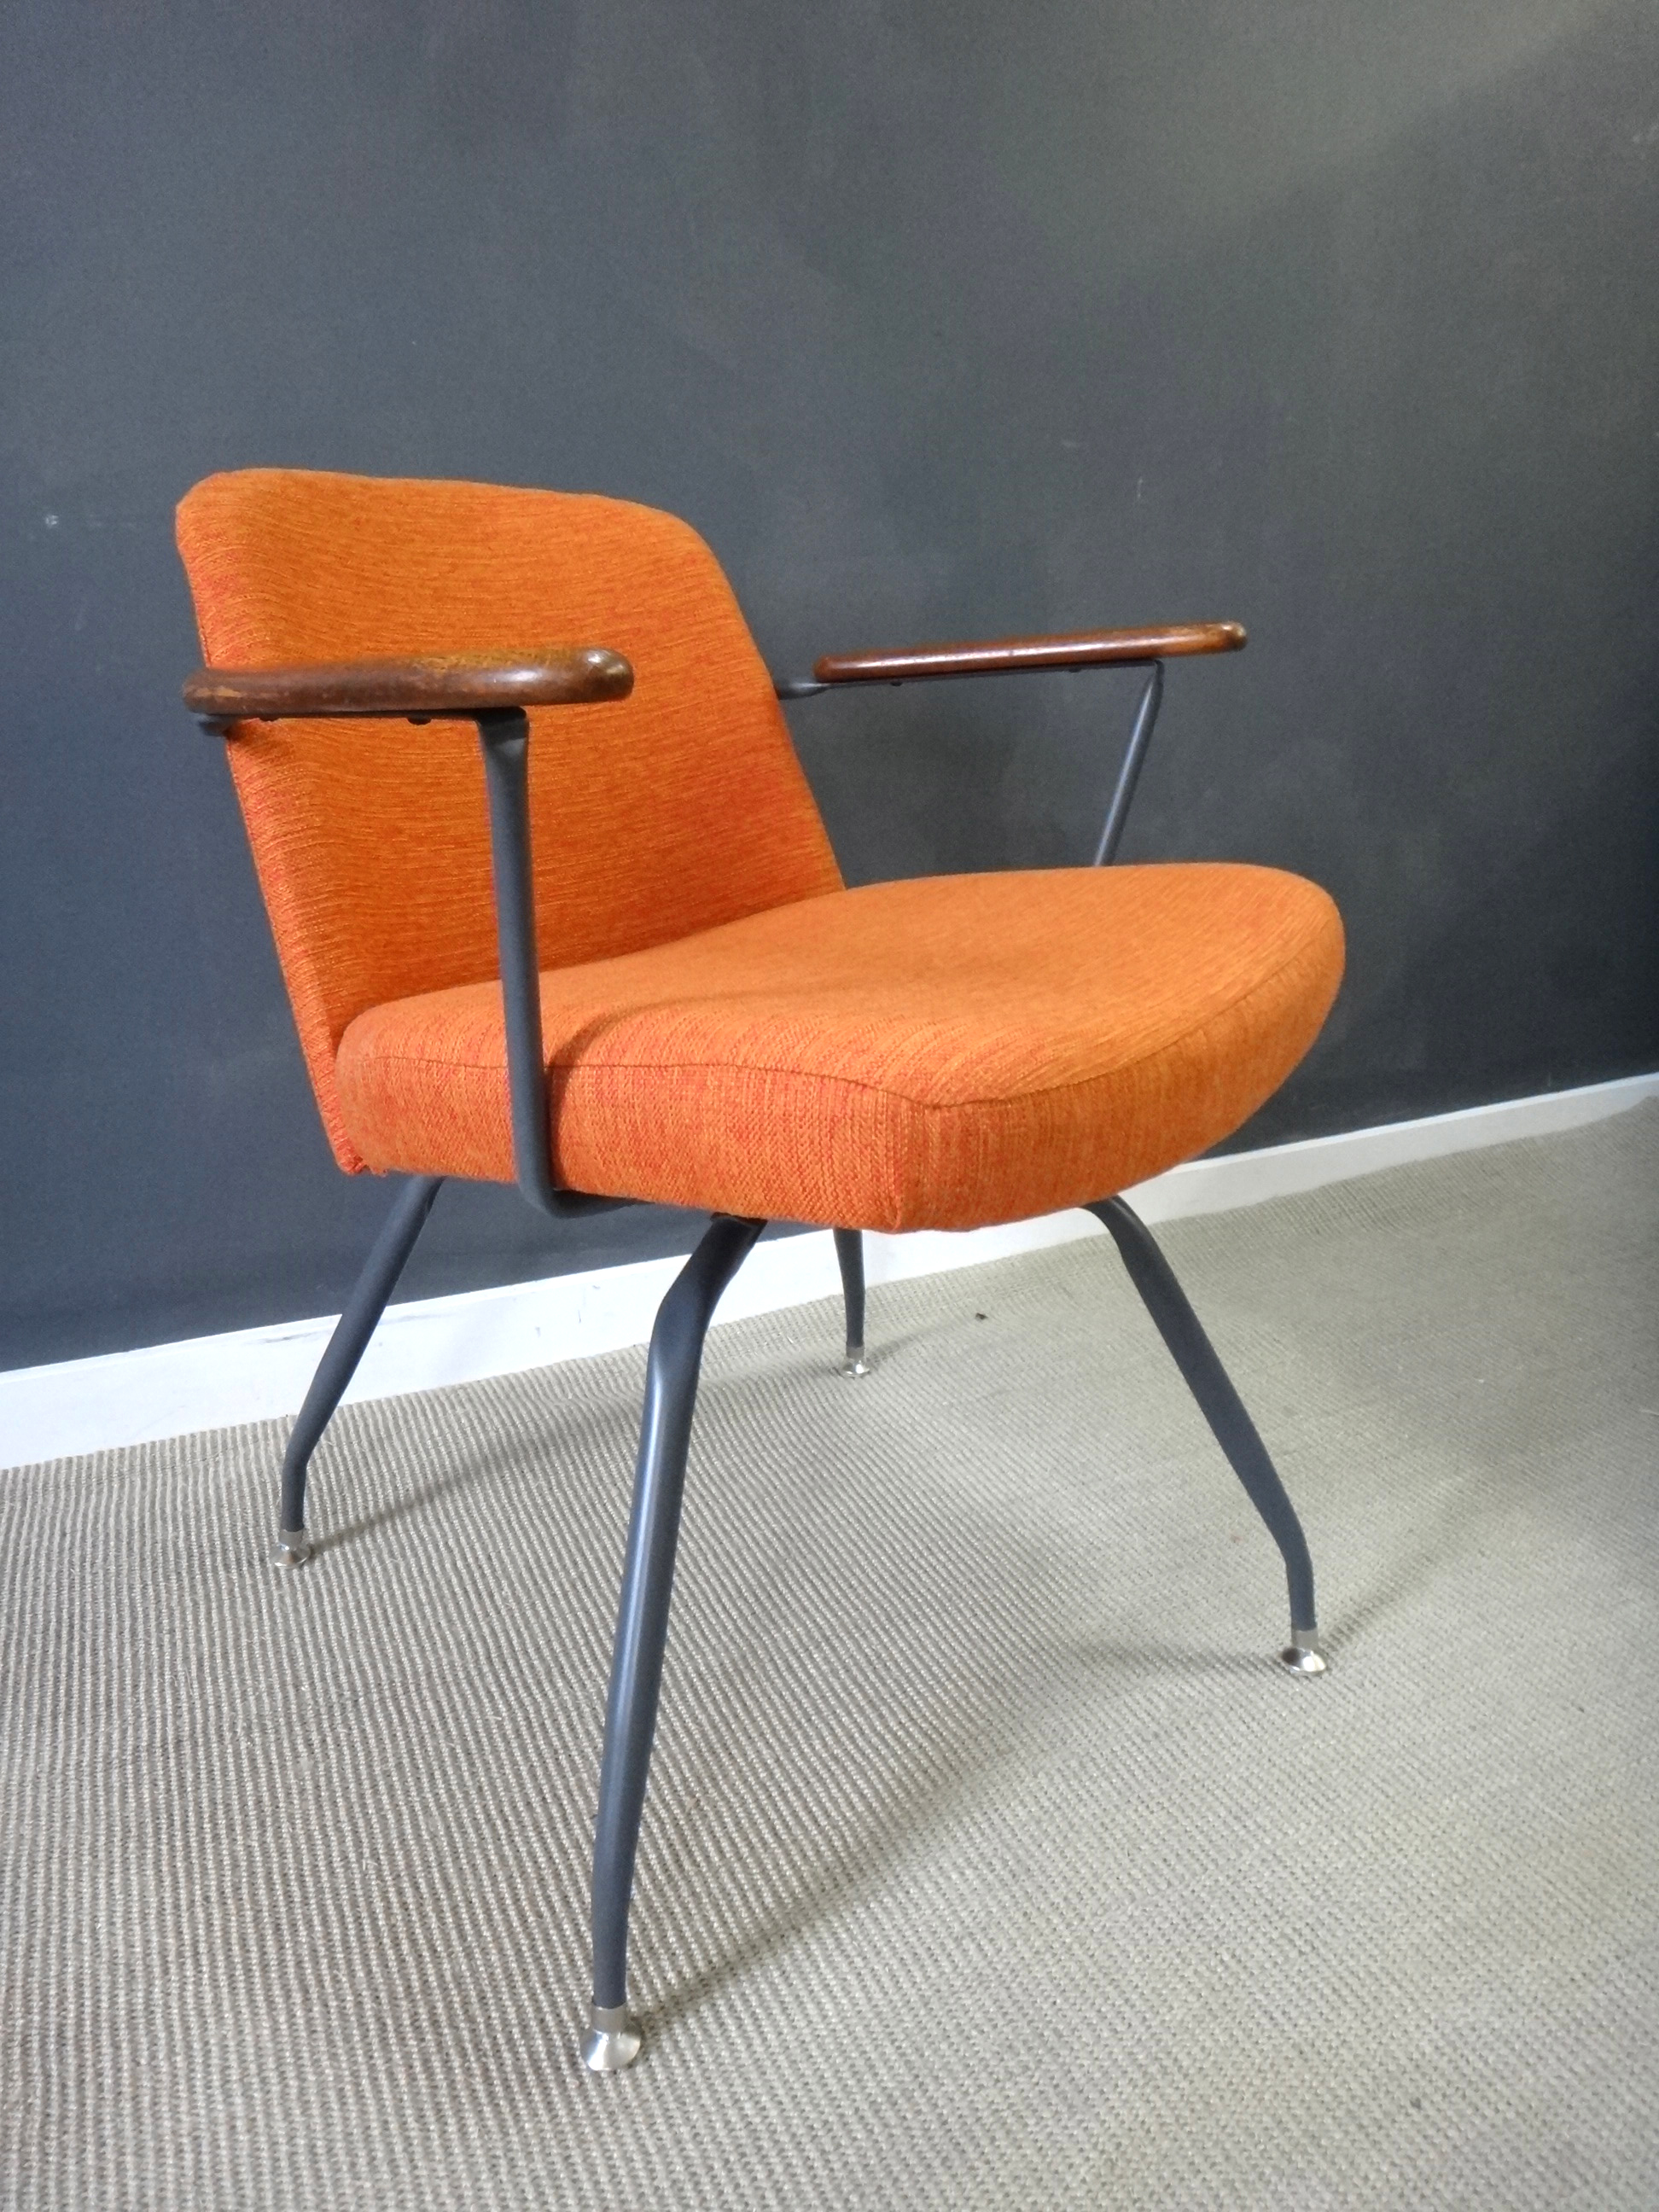 ... Pair Mid Century Upholstered Seng Chairs ... & Pair Mid Century Upholstered Seng Chairs - Retrocraft Design ...